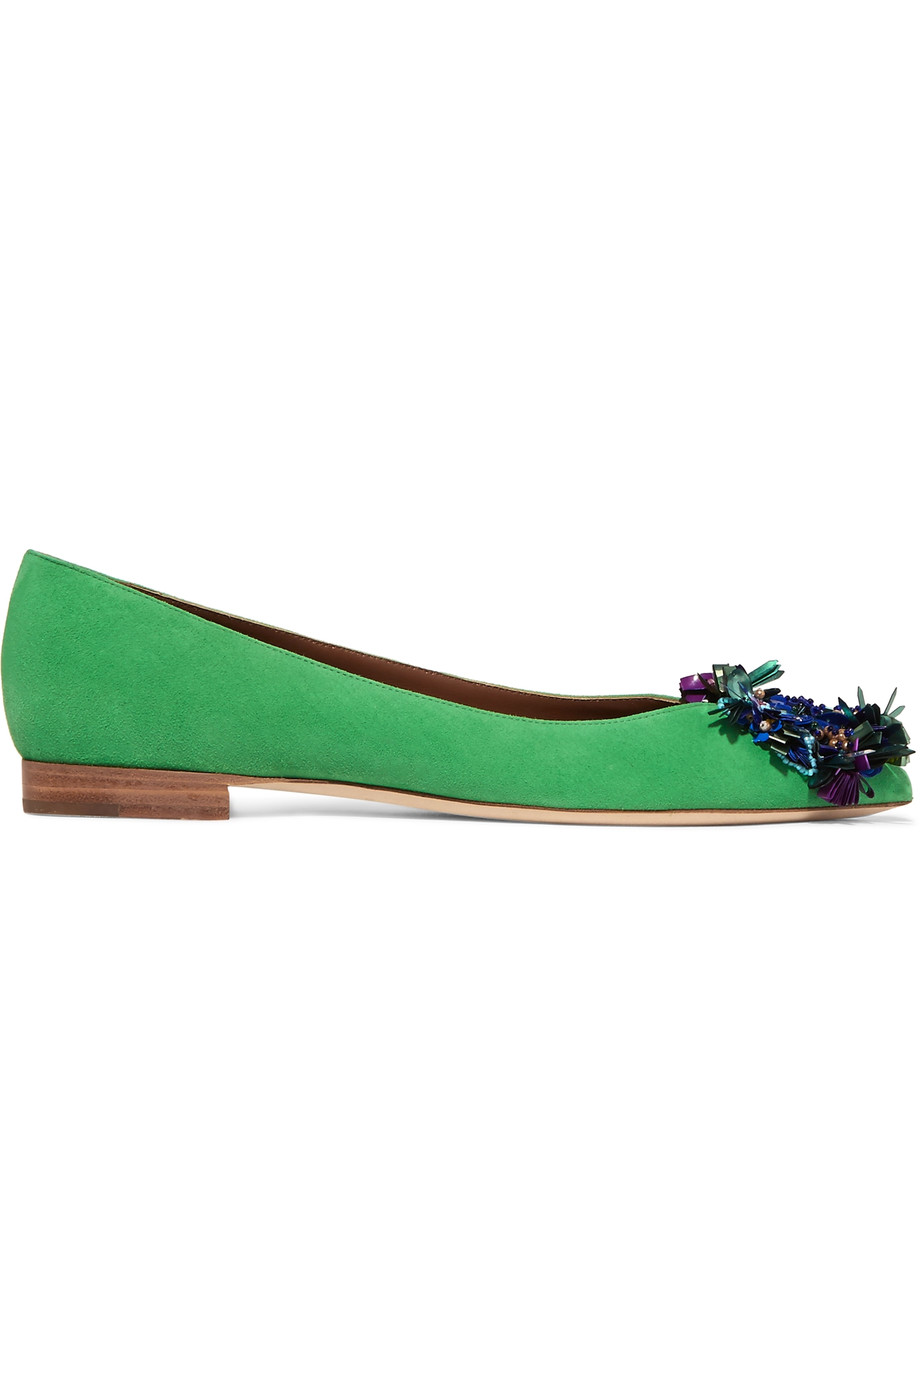 MALONE SOULIERS Billie Embellished Suede Point-Toe Ballet Flats